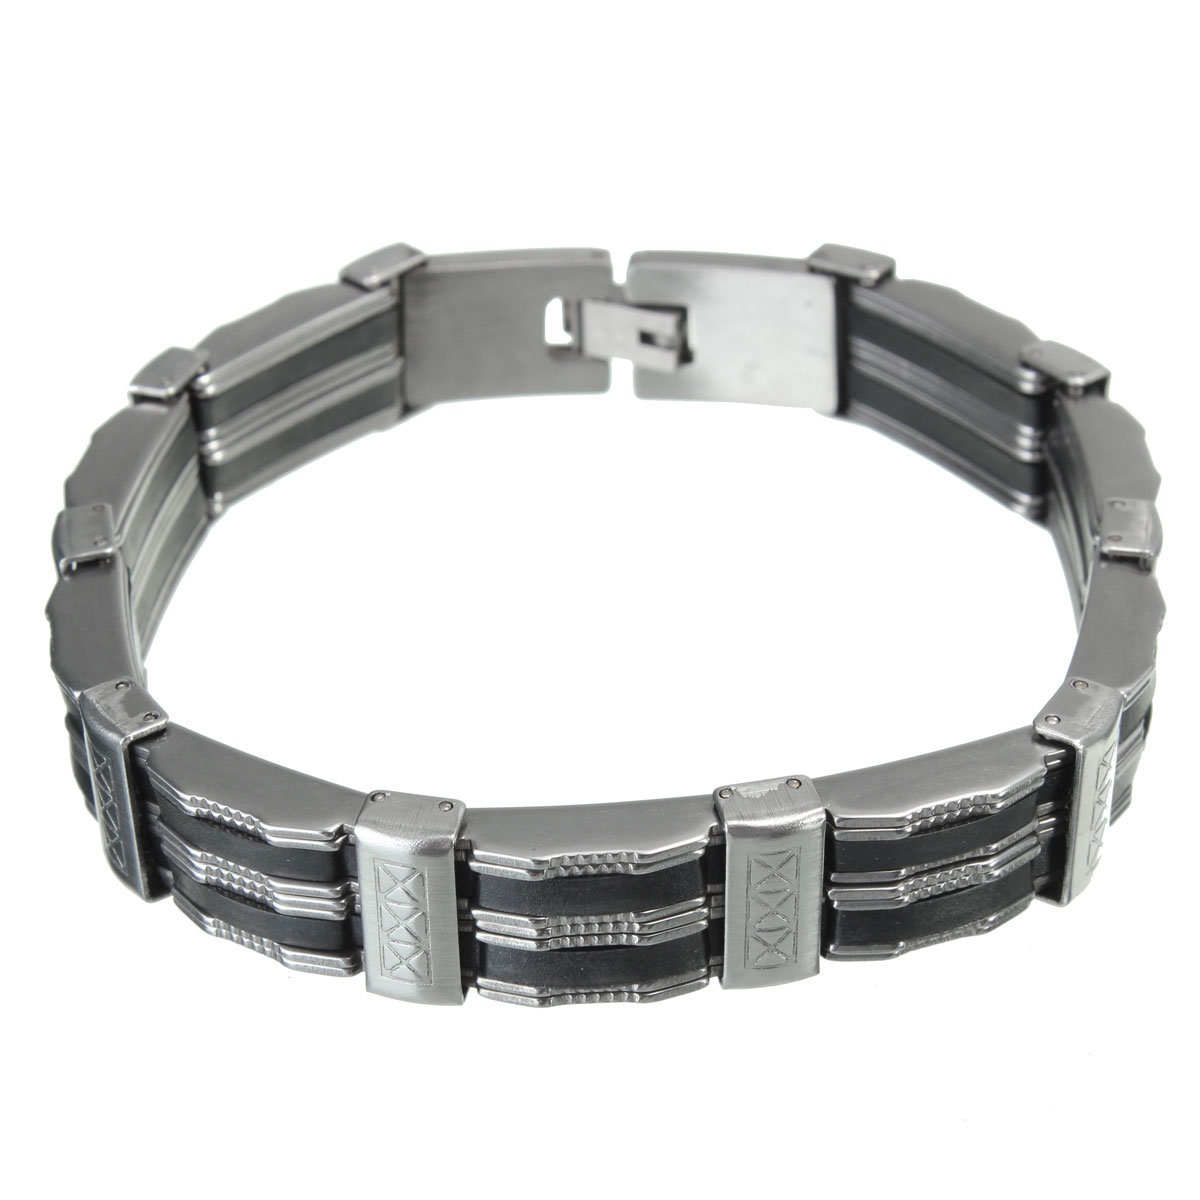 Stainless Steel & Silicone Wristband Bracelet